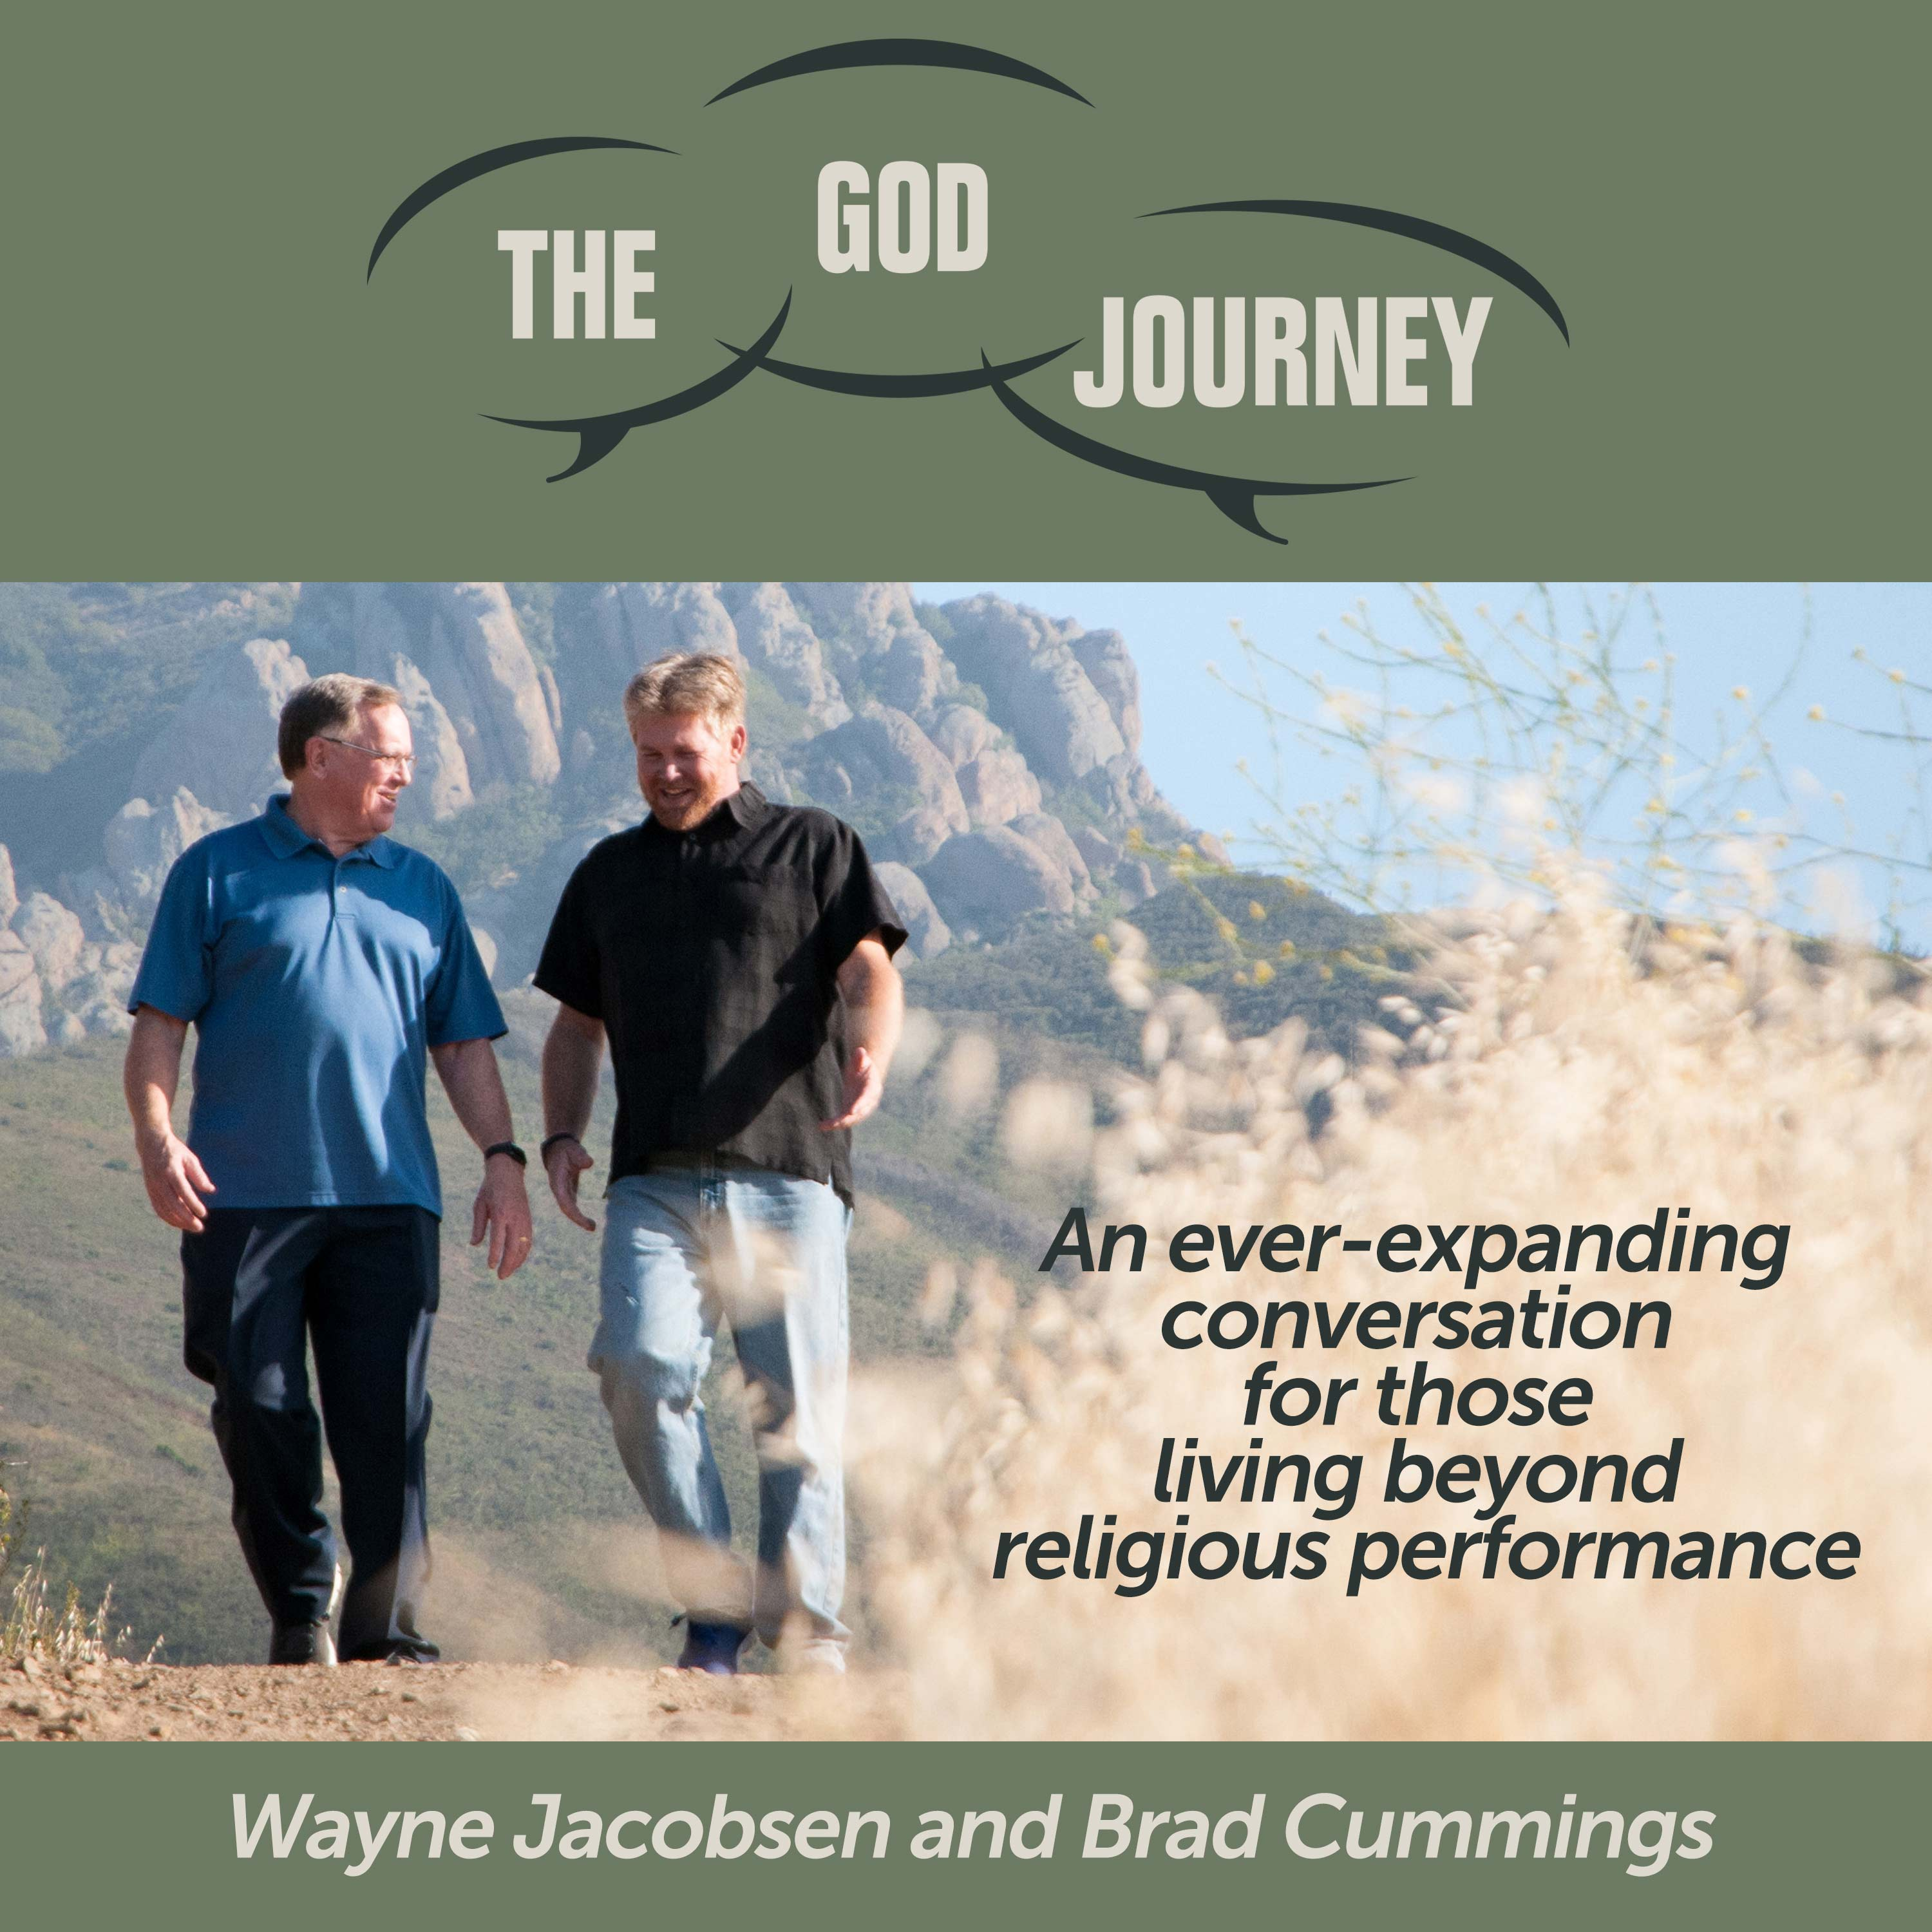 The God Journey